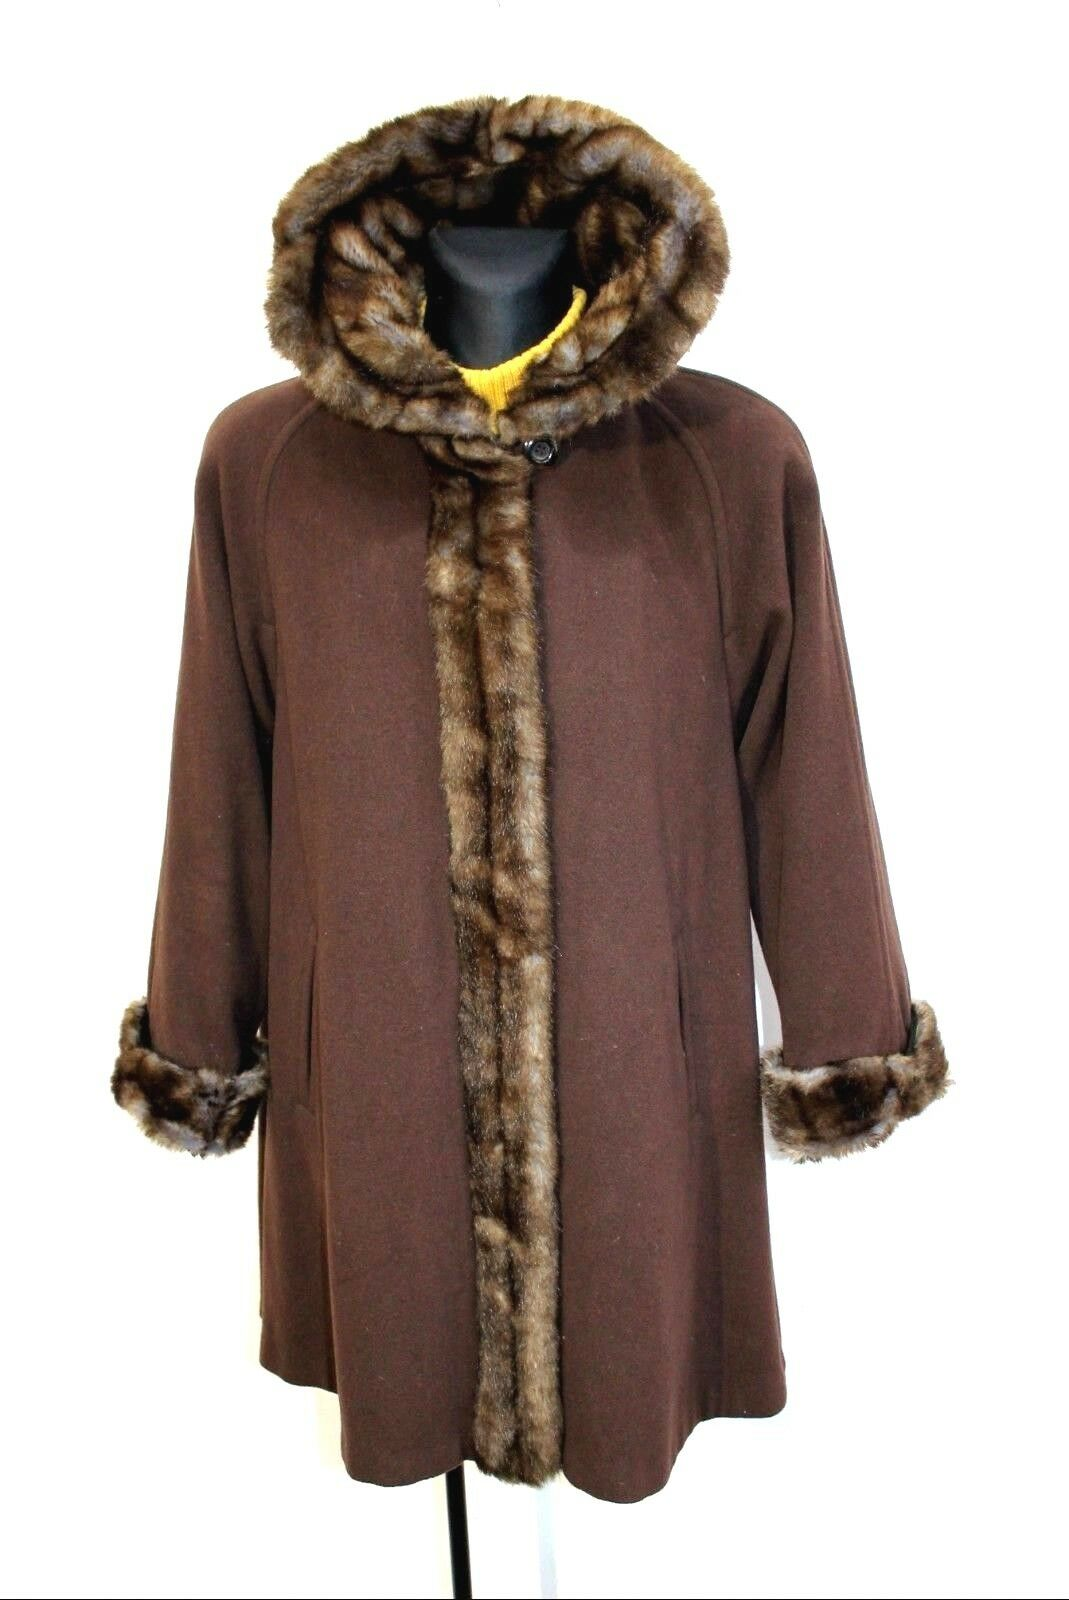 VTG Womens CW ITALY Shearling Wool Cashmere Mid Long Coat Brown US 8